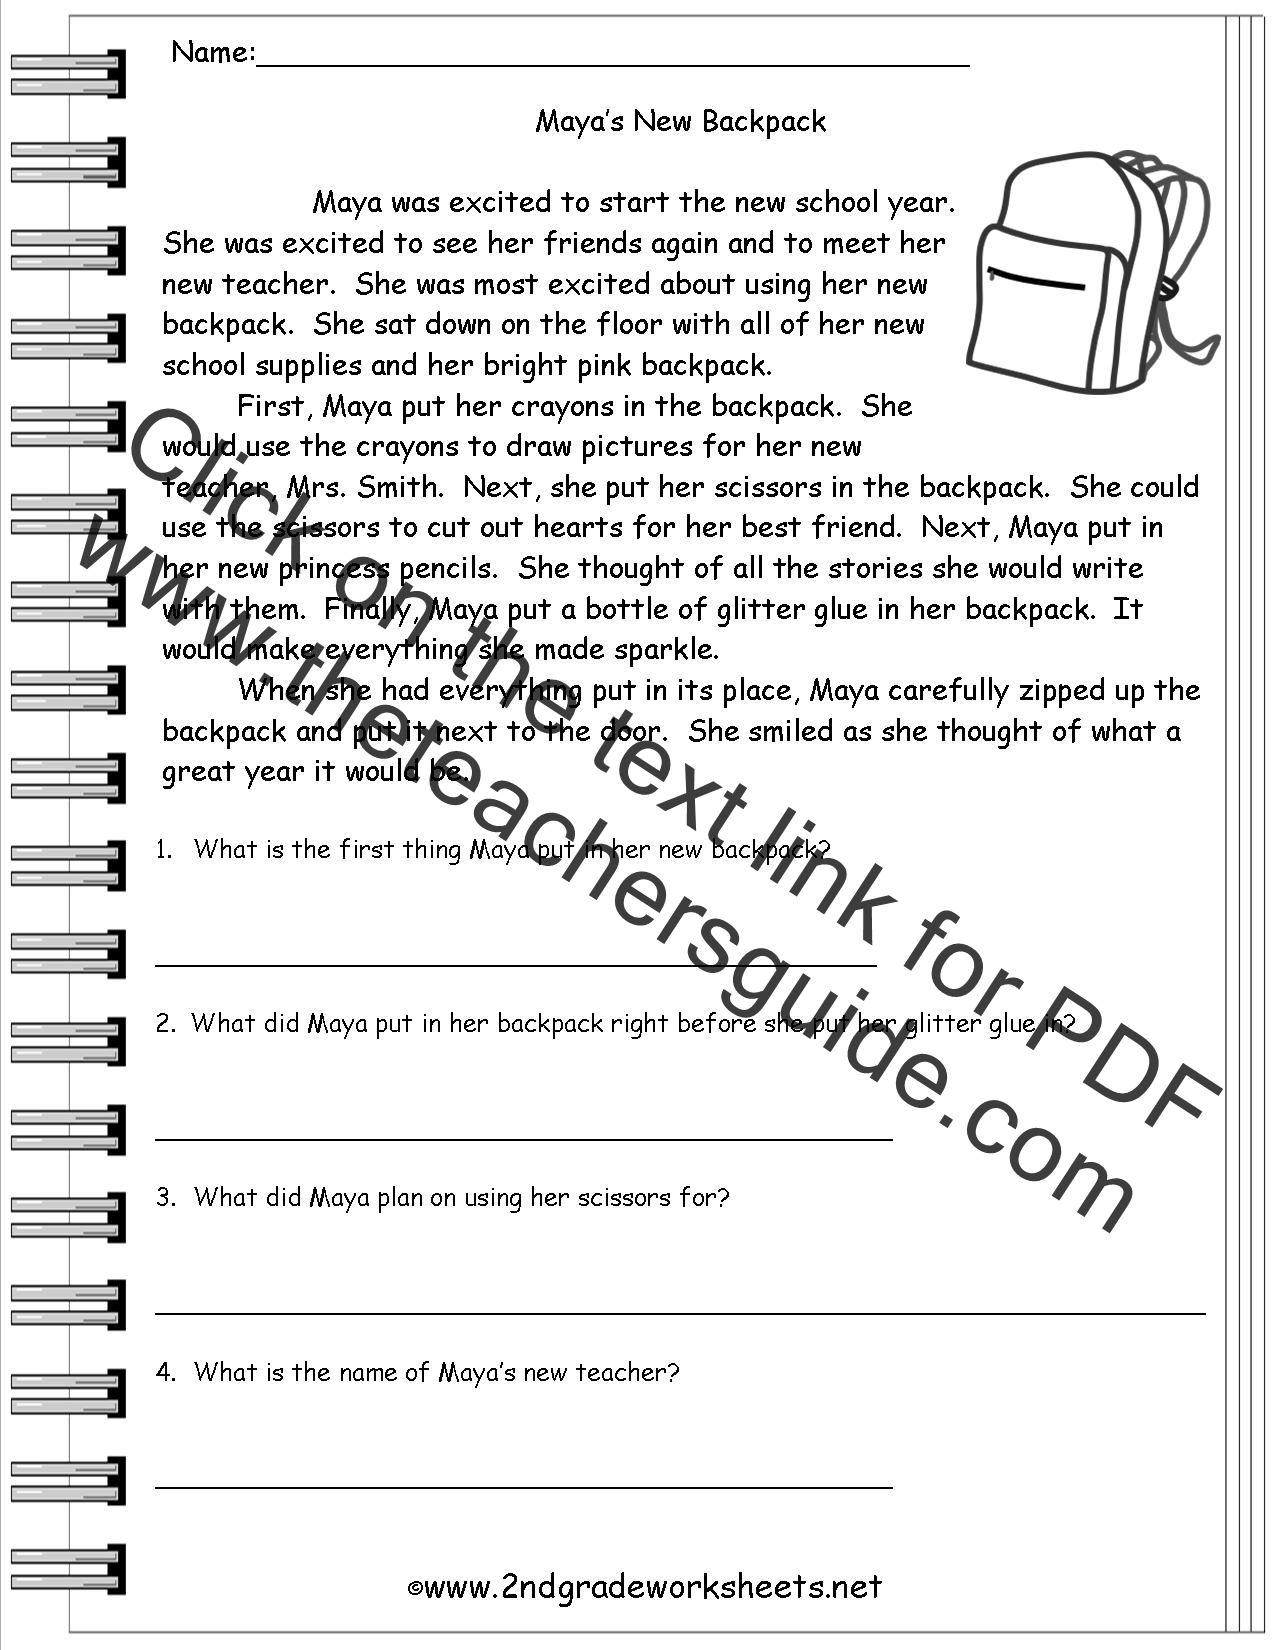 Worksheets Reading Comprehension Worksheets 2nd Grade reading worksheeets literature worksheets